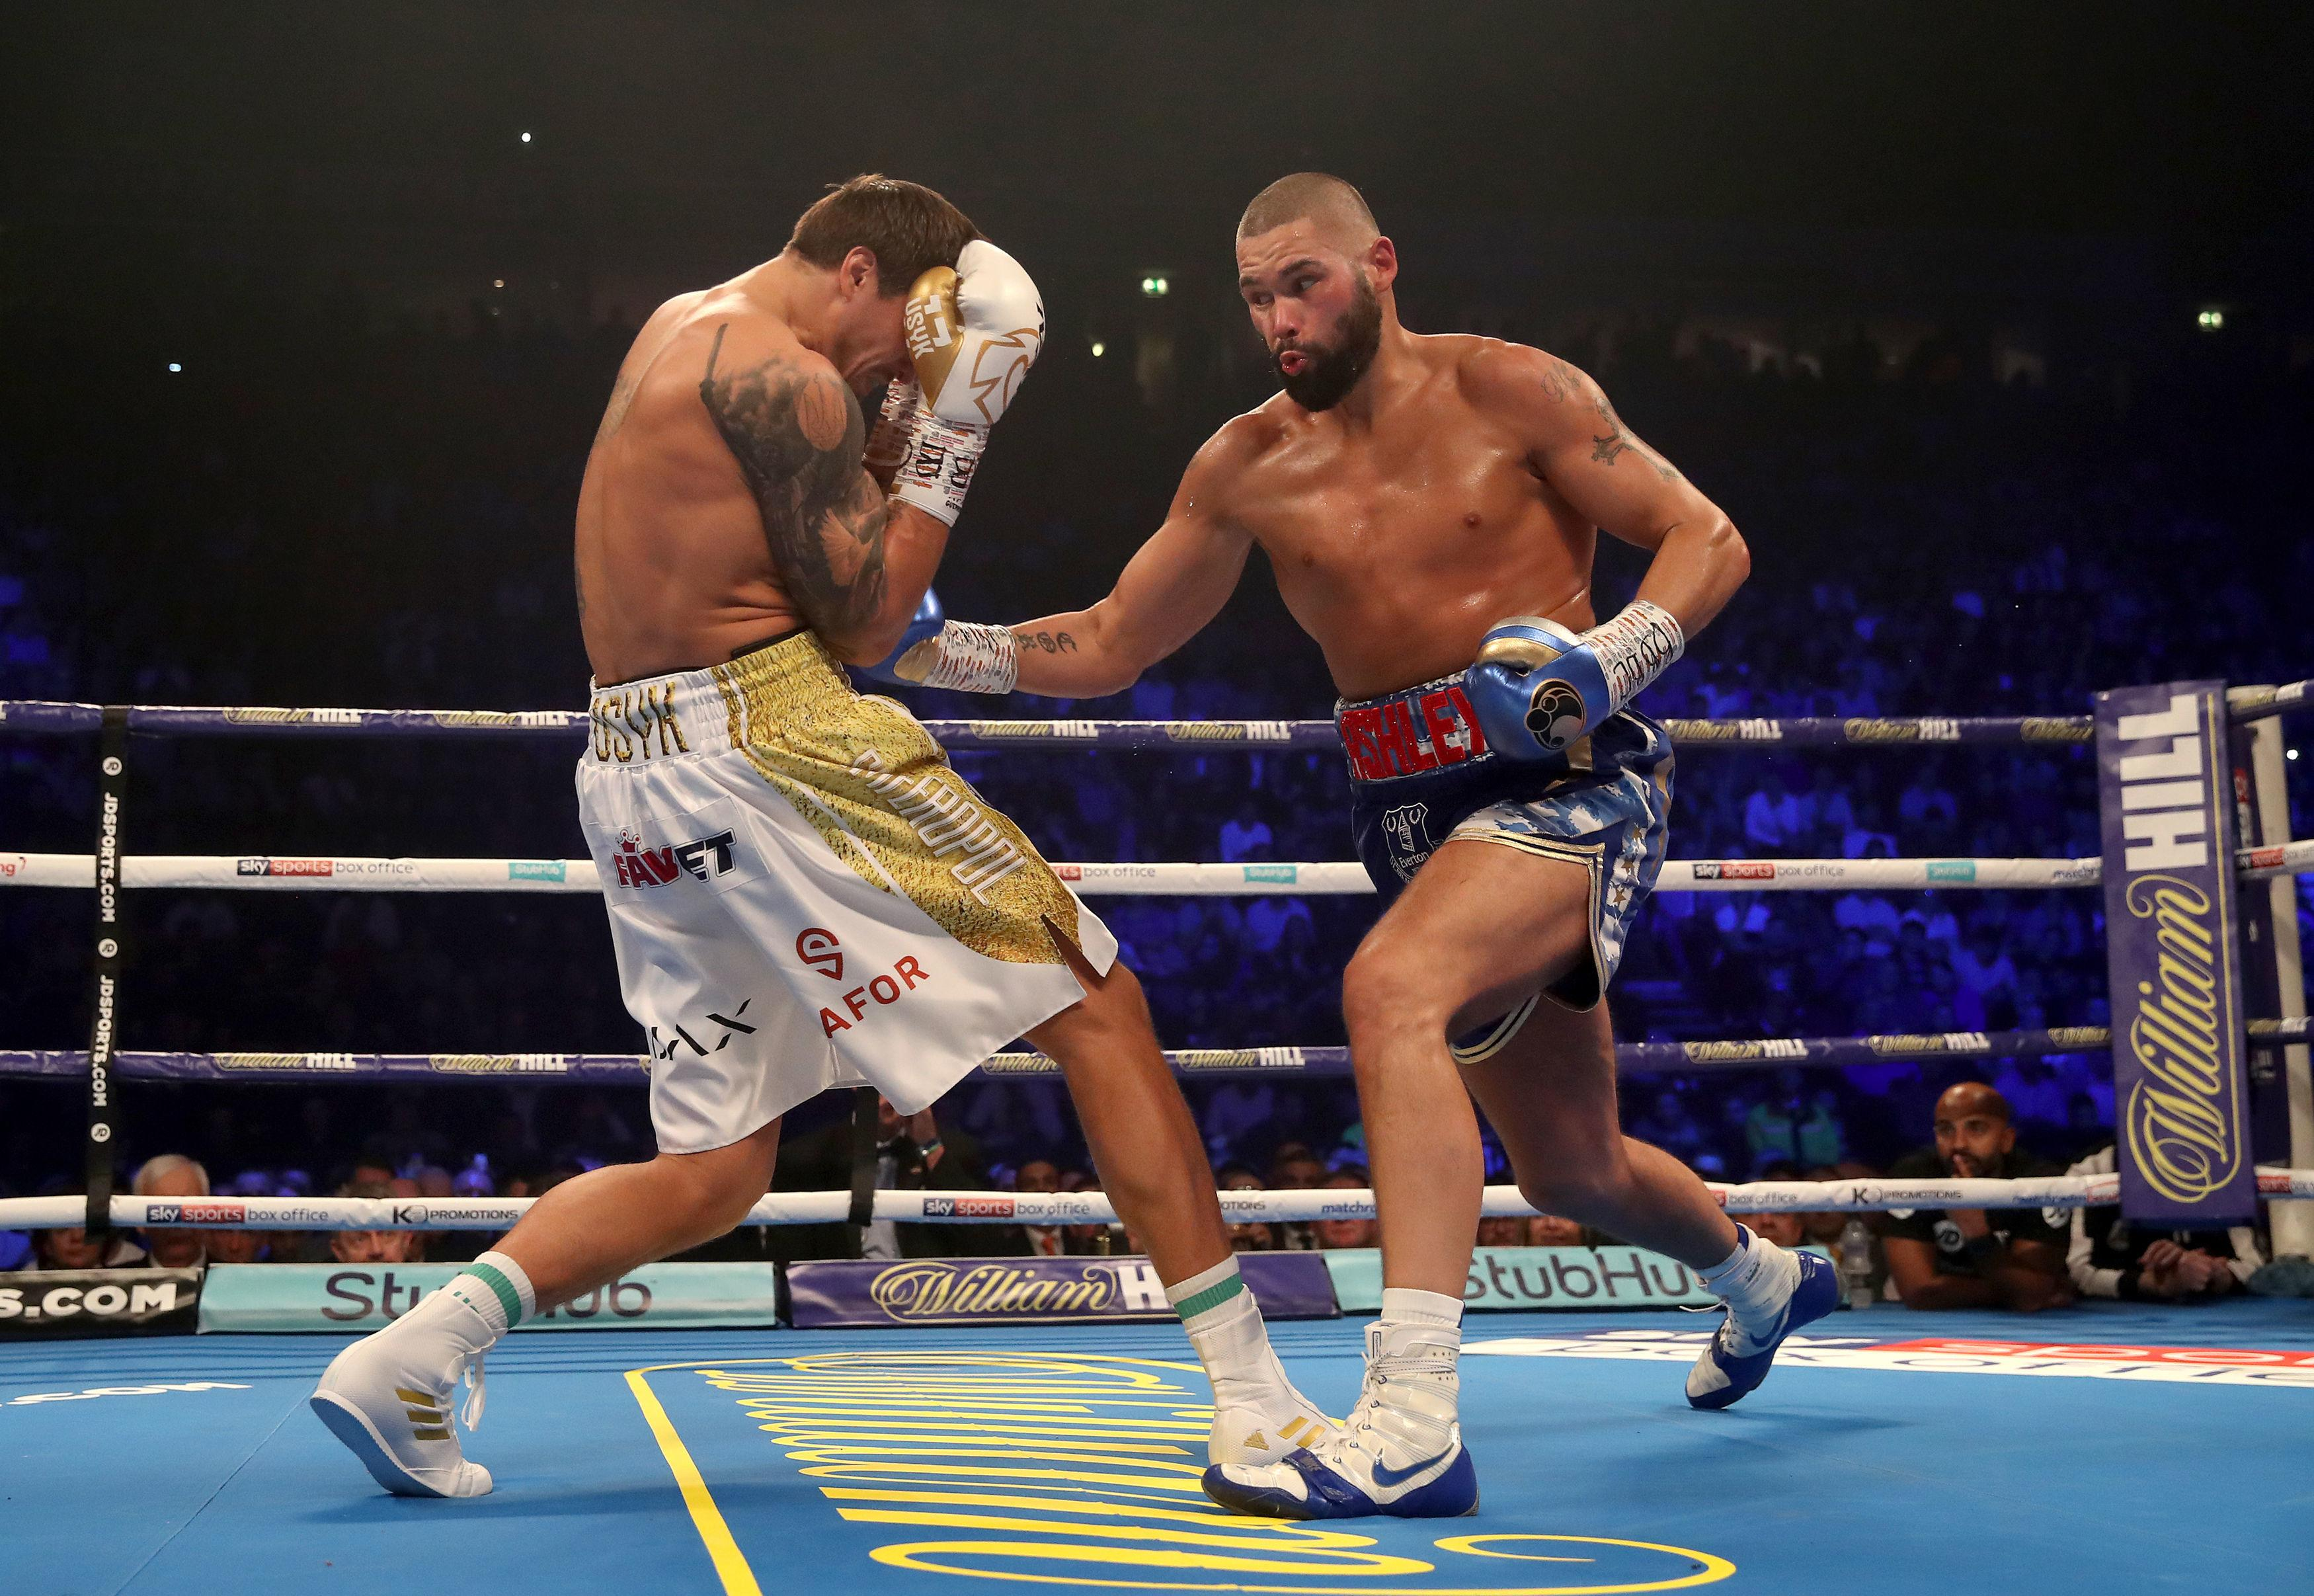 Bellew found success early in the fight landing counter shots to Usyk